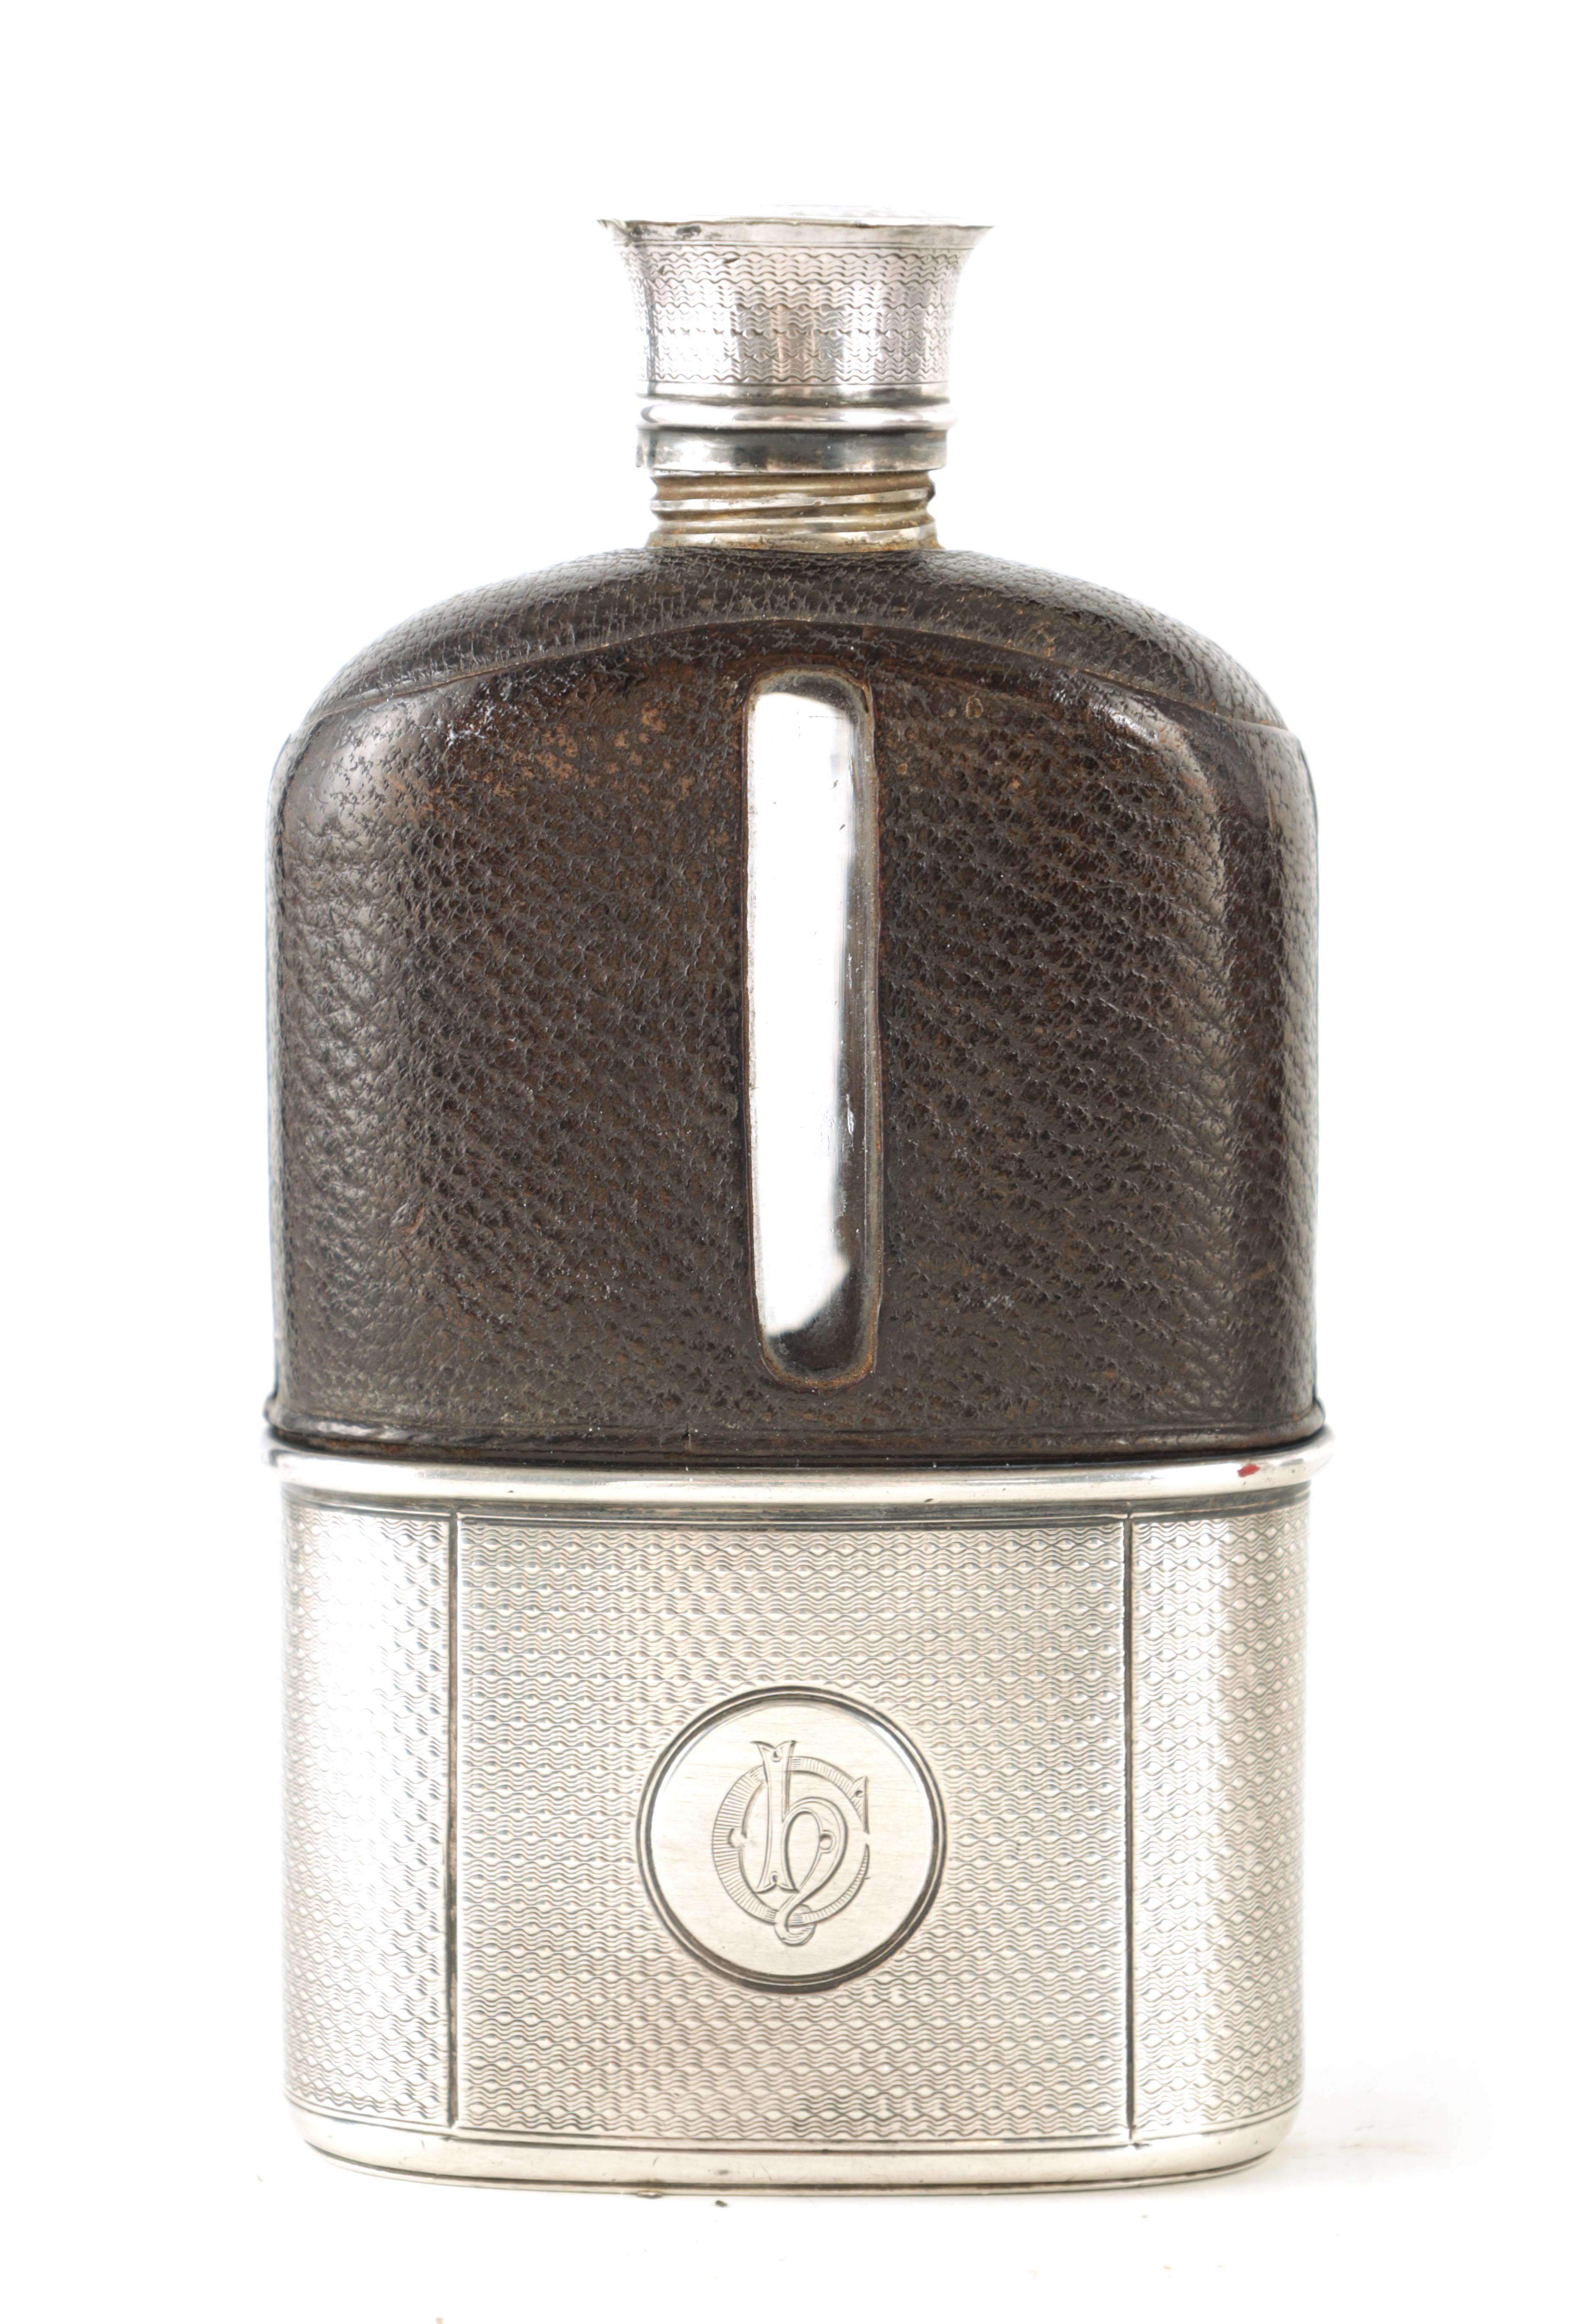 A VICTORIAN SILVER AND MOROCCAN LEATHER HIP FLASK RETAILED BY ASPREY 186 BOND STREET with engine-